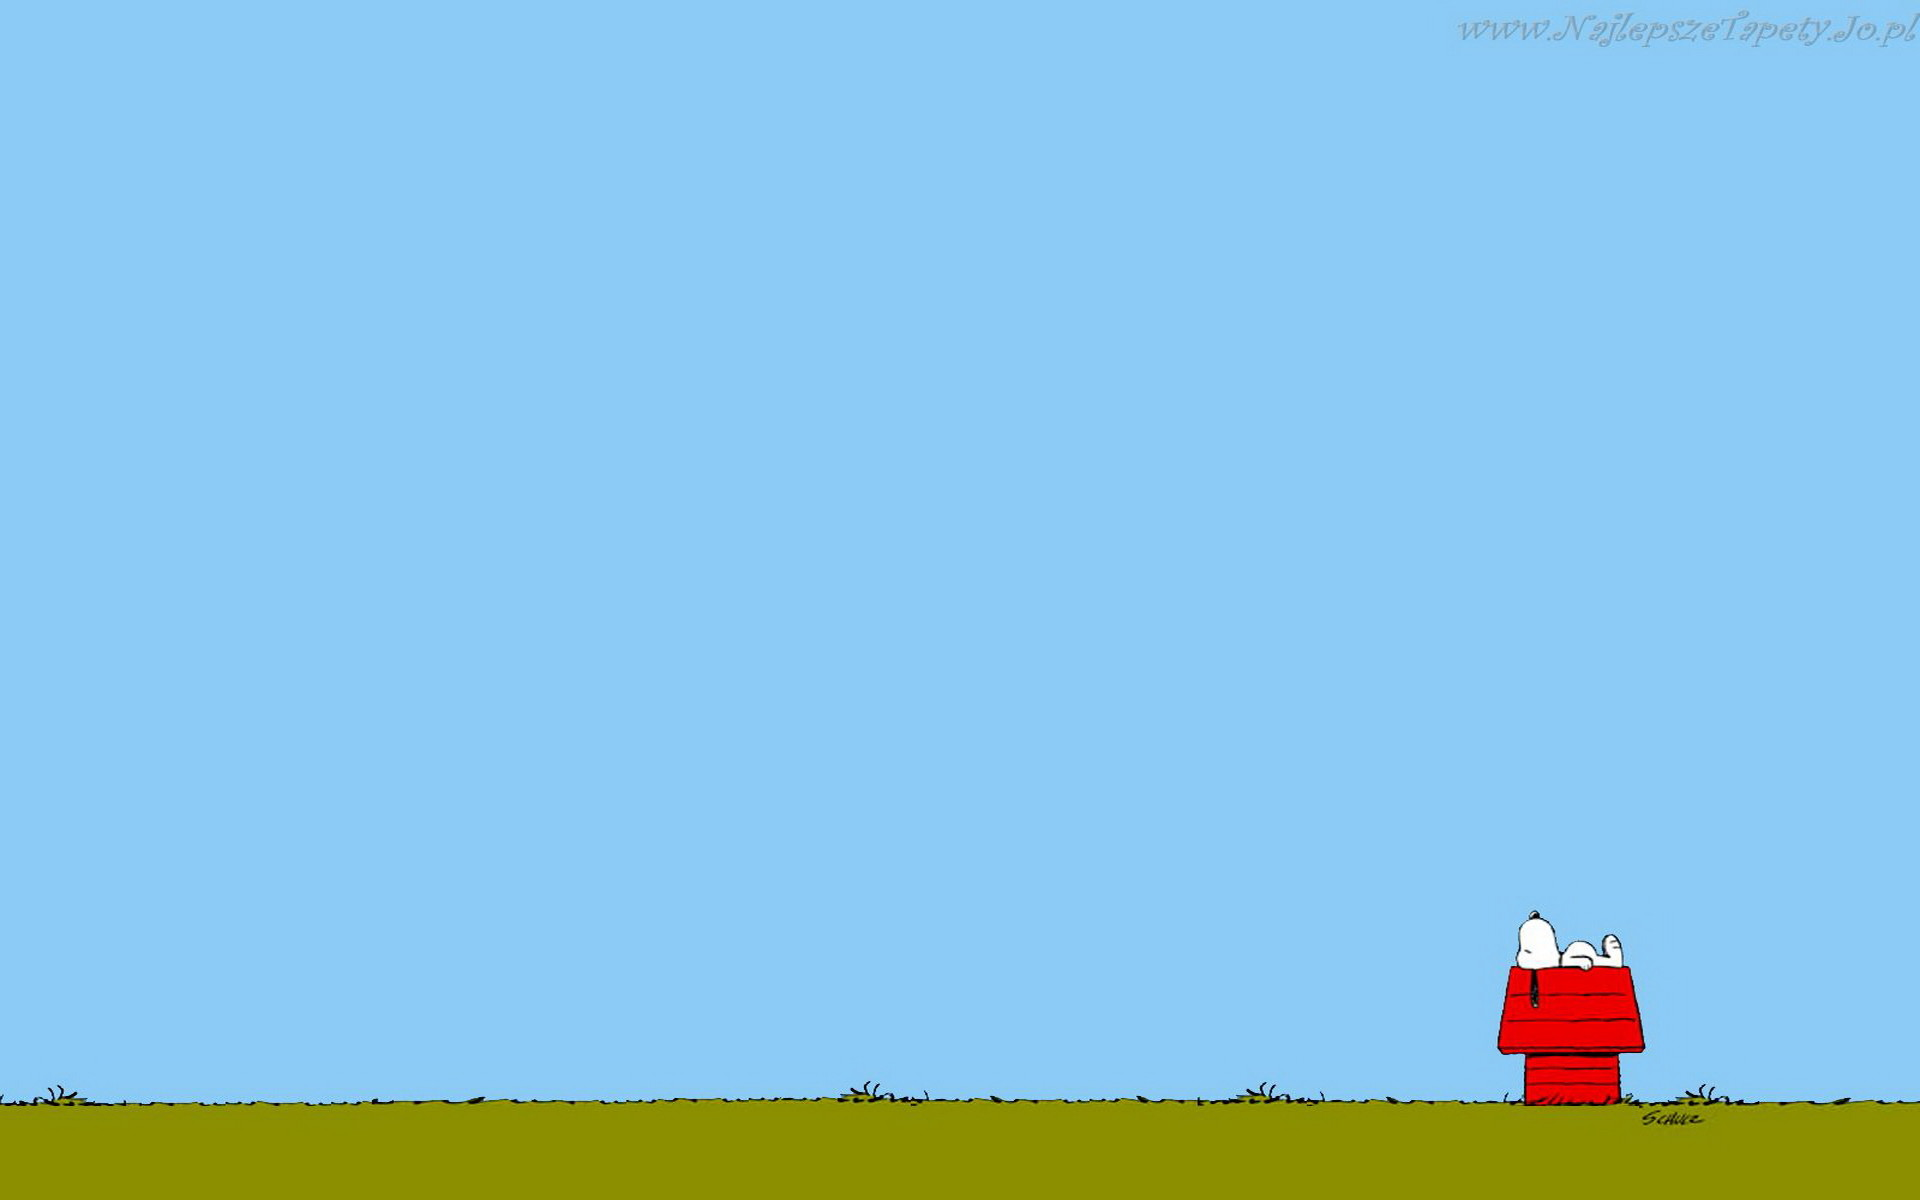 Snoopy Wallpaper Iphone 6 Peanuts Christmas Wallpaper 183 ①